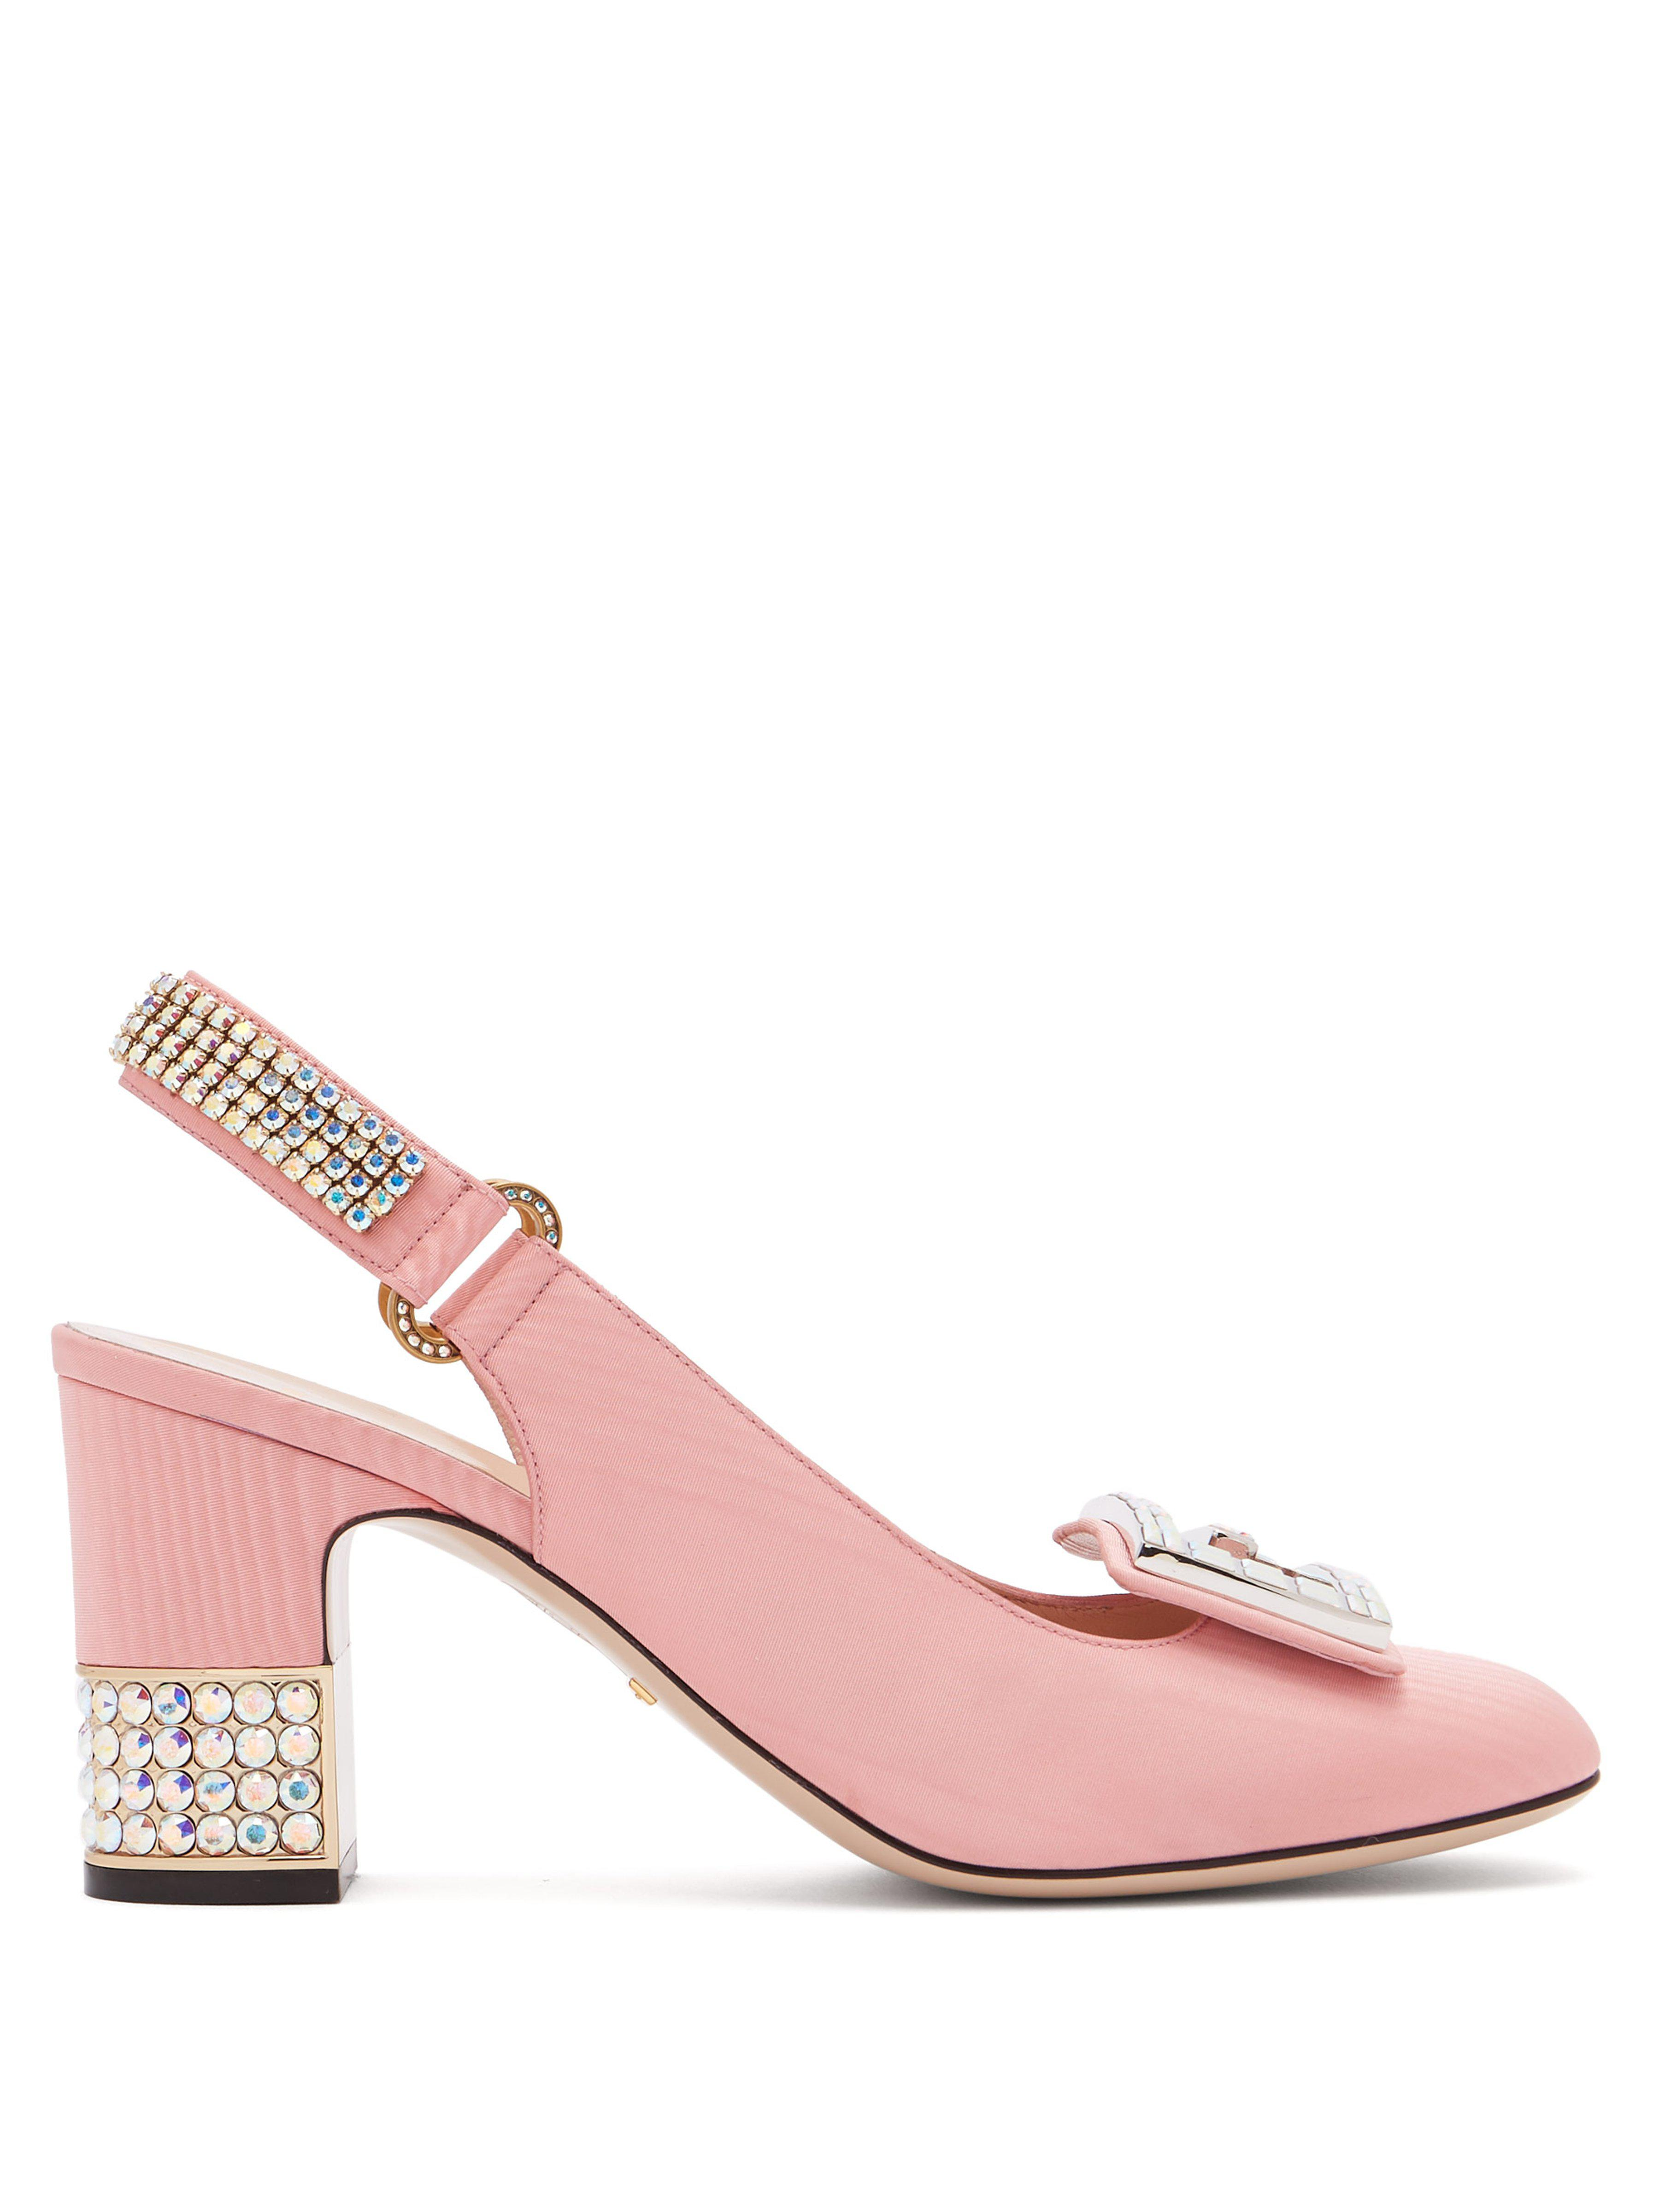 e9b767afd0db Gucci Madelyn Crystal Embellished Silk Moire Pumps in Pink - Lyst